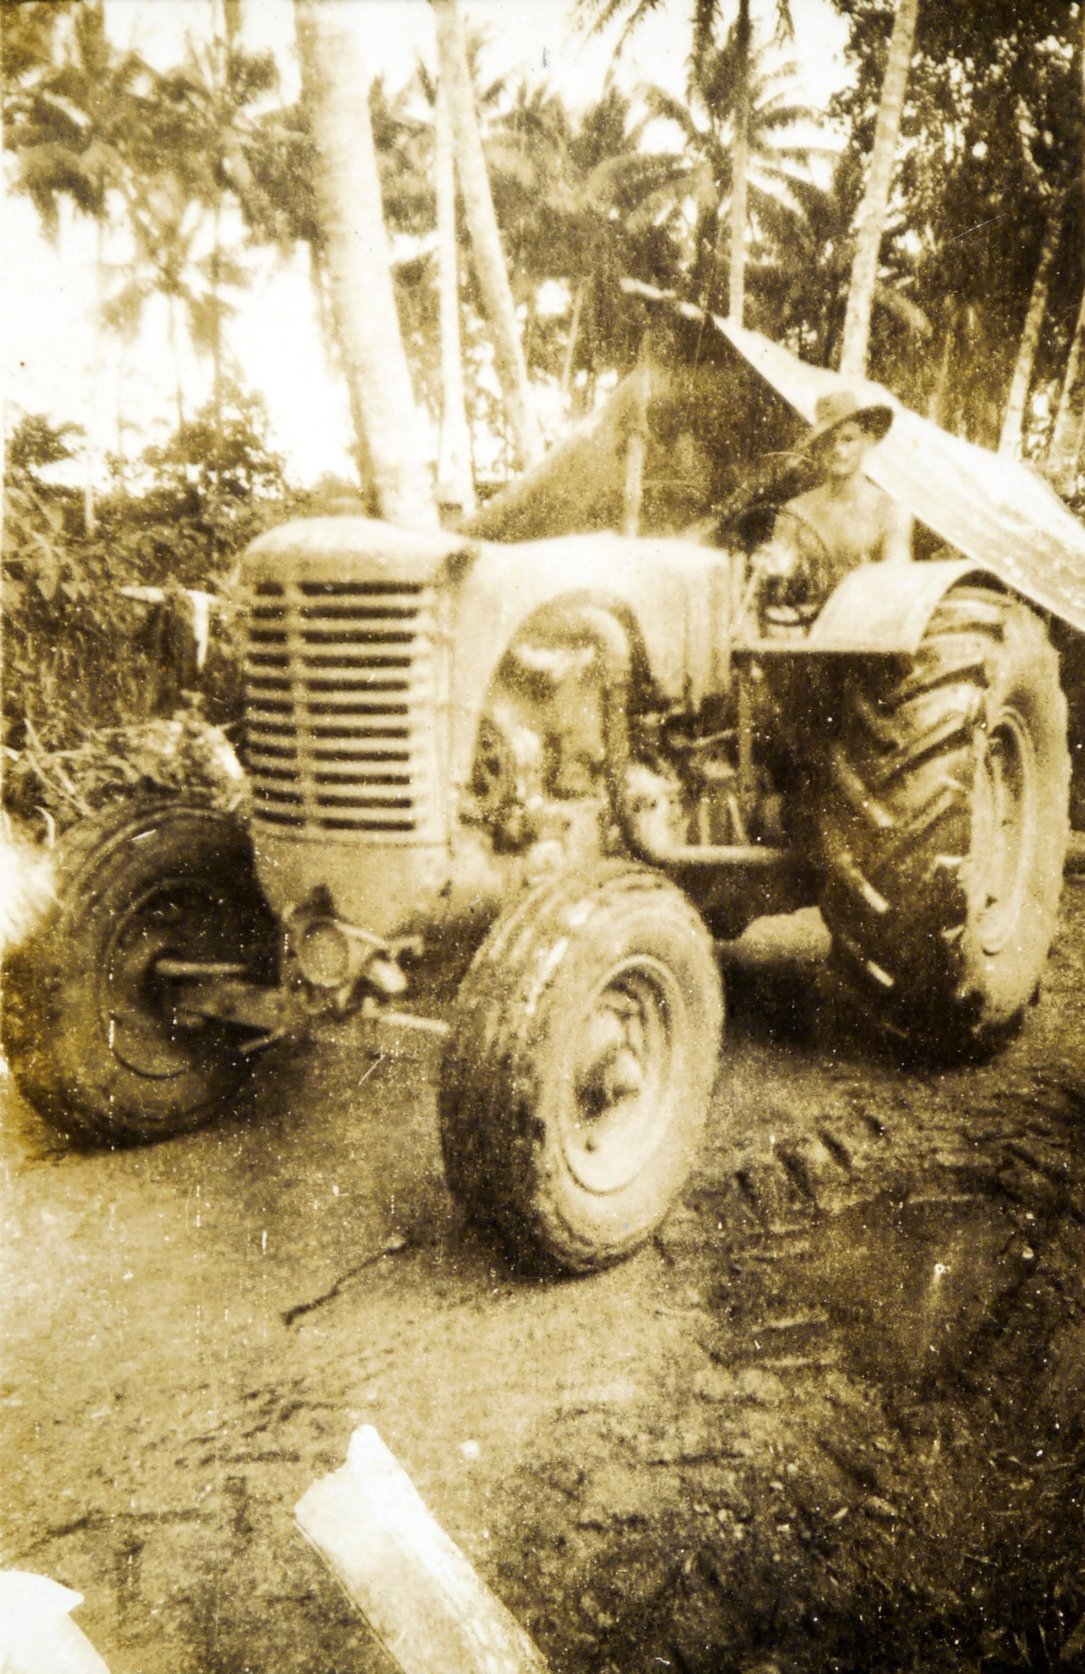 Tractor in an unknown South Pacific location during WW2.